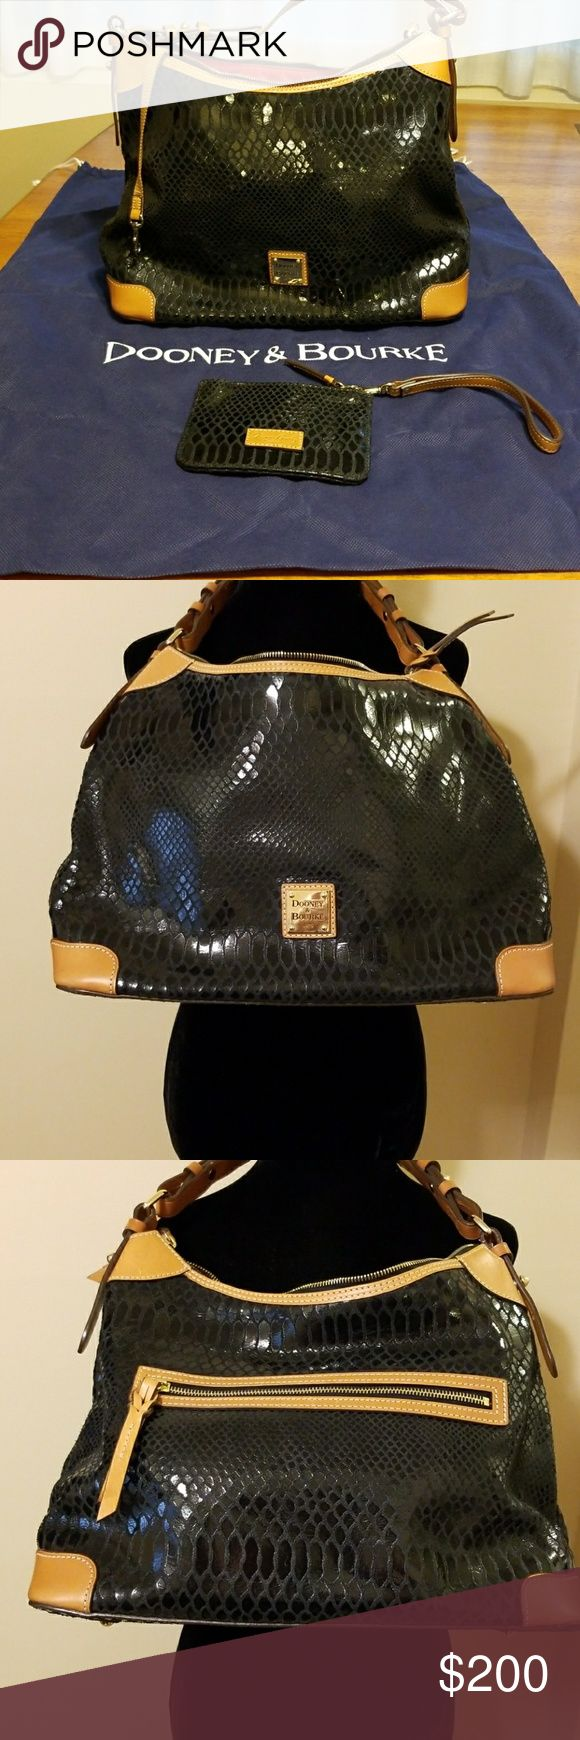 "NWOT Dooney&Bourke snakeskin leather shoulder bag This gorgeous black snakeskin bag with natural leather trim is in perfect condition. It comes with the Dooney & Bourke dust bag and a matching black snakeskin wristlet. The outside has a zipper pocket and the interior has 2 slip pockets and a zipper pocket. There is also a middle zipper section that divides the interior and a key-keeper strap. 9"" strap drop. 10""x14""x6"". Gold hardware, top zip closure, footed bottom. Dooney & Bourke Bags…"